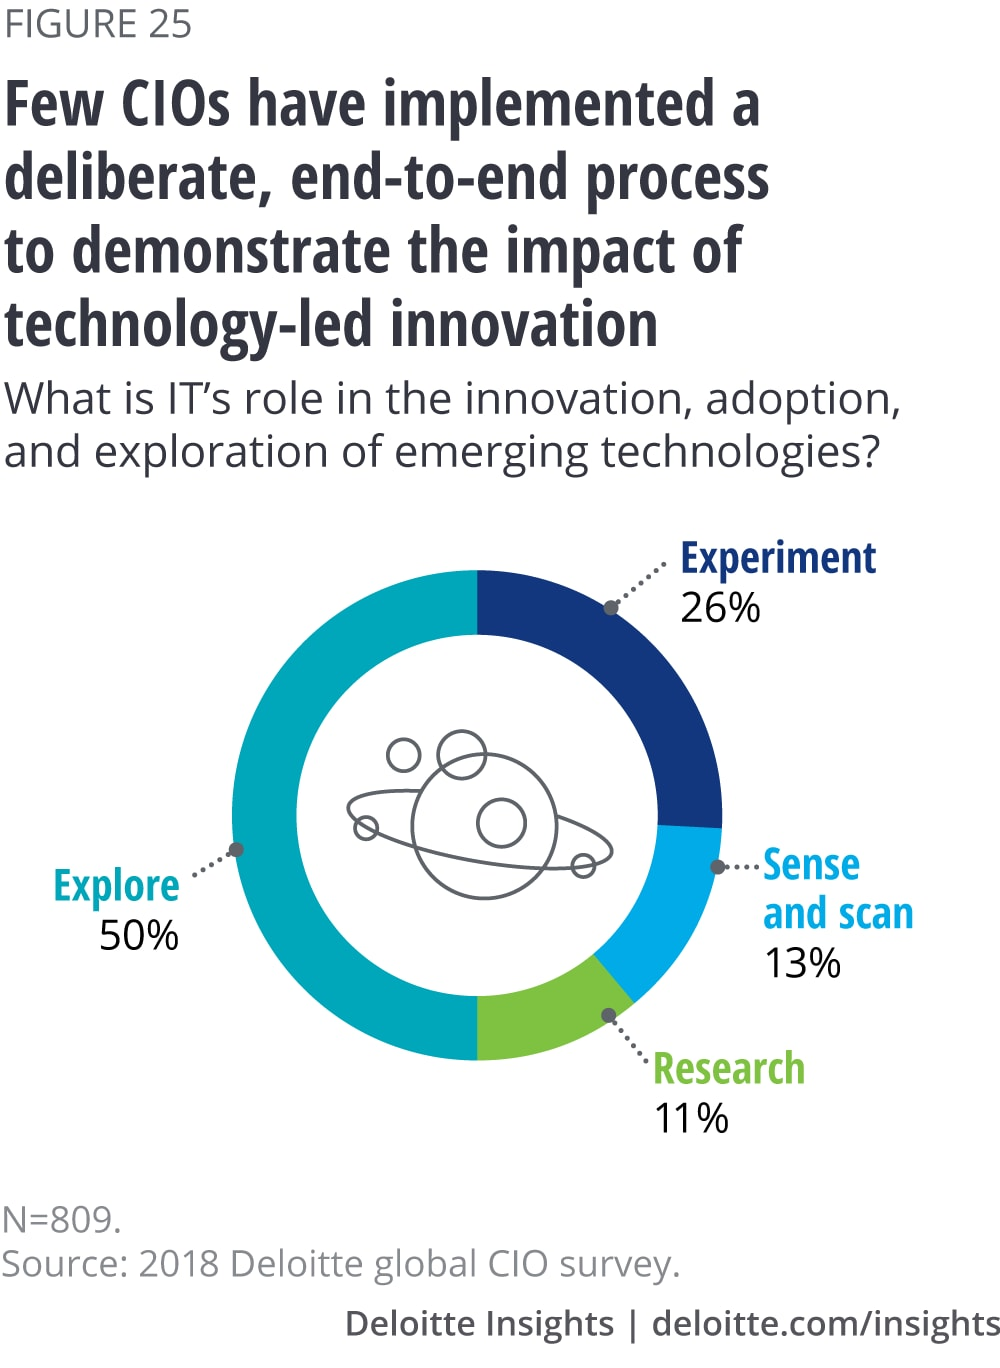 Few CIOs have implemented a deliberate, end-to-end process to demonstrate the impact of technology-led innovation